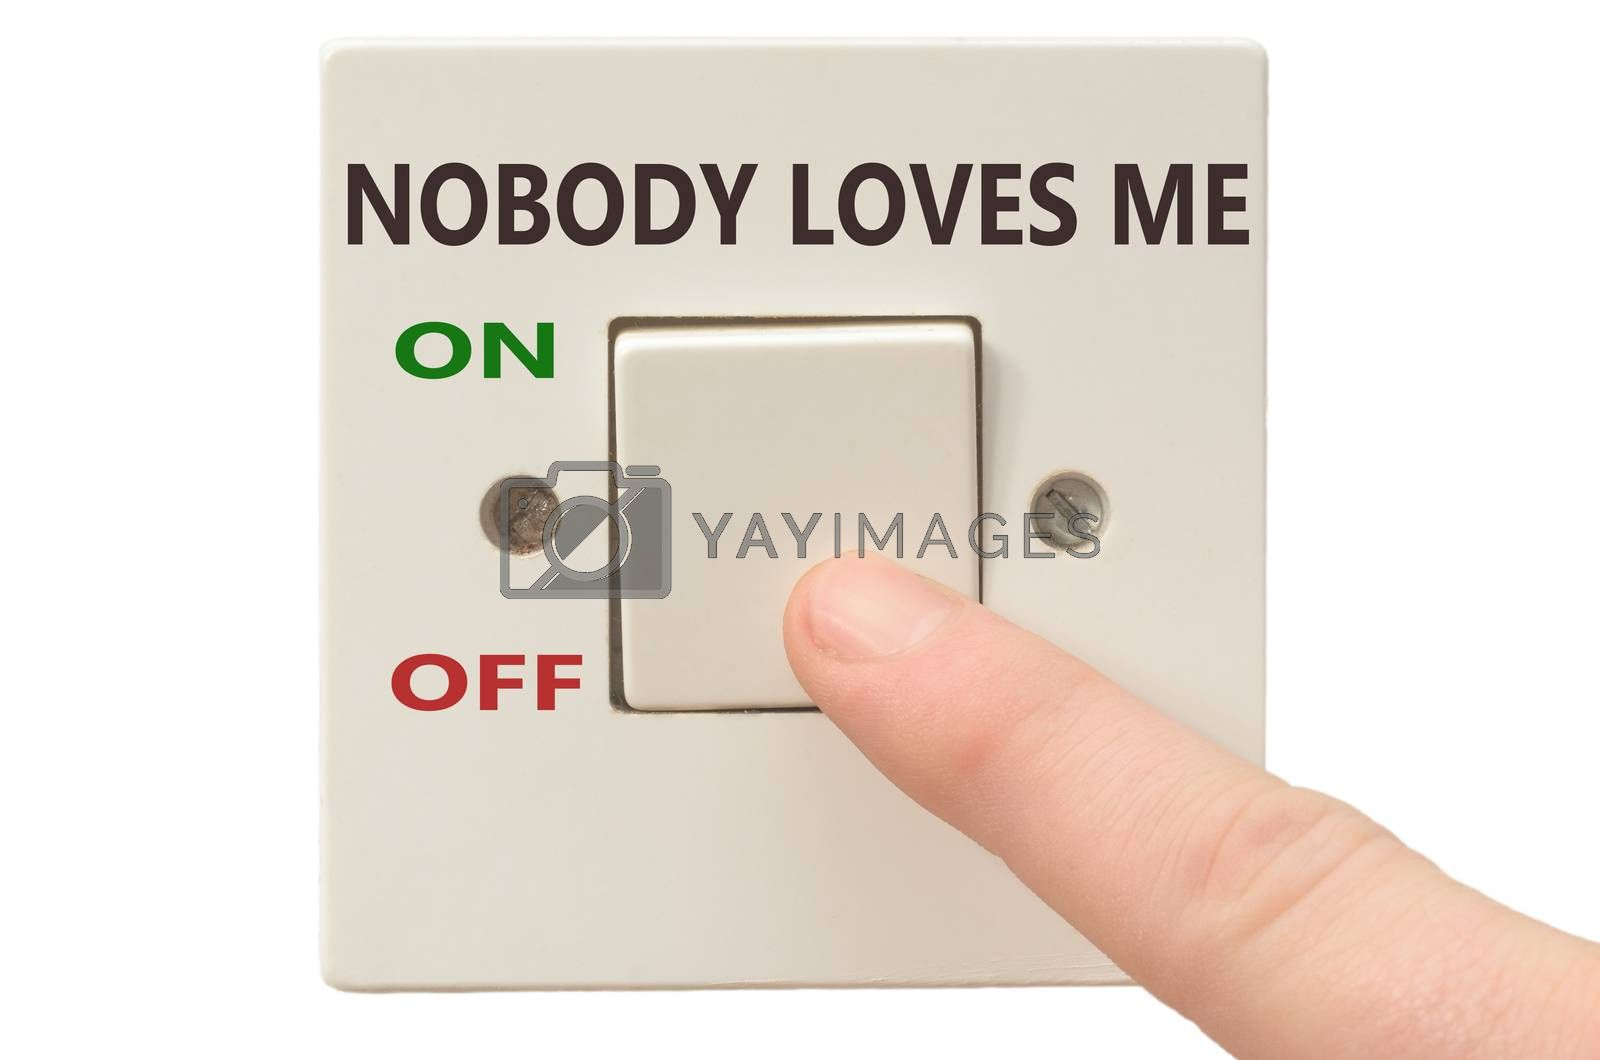 Turning off Nobody loves me with finger on electrical switch